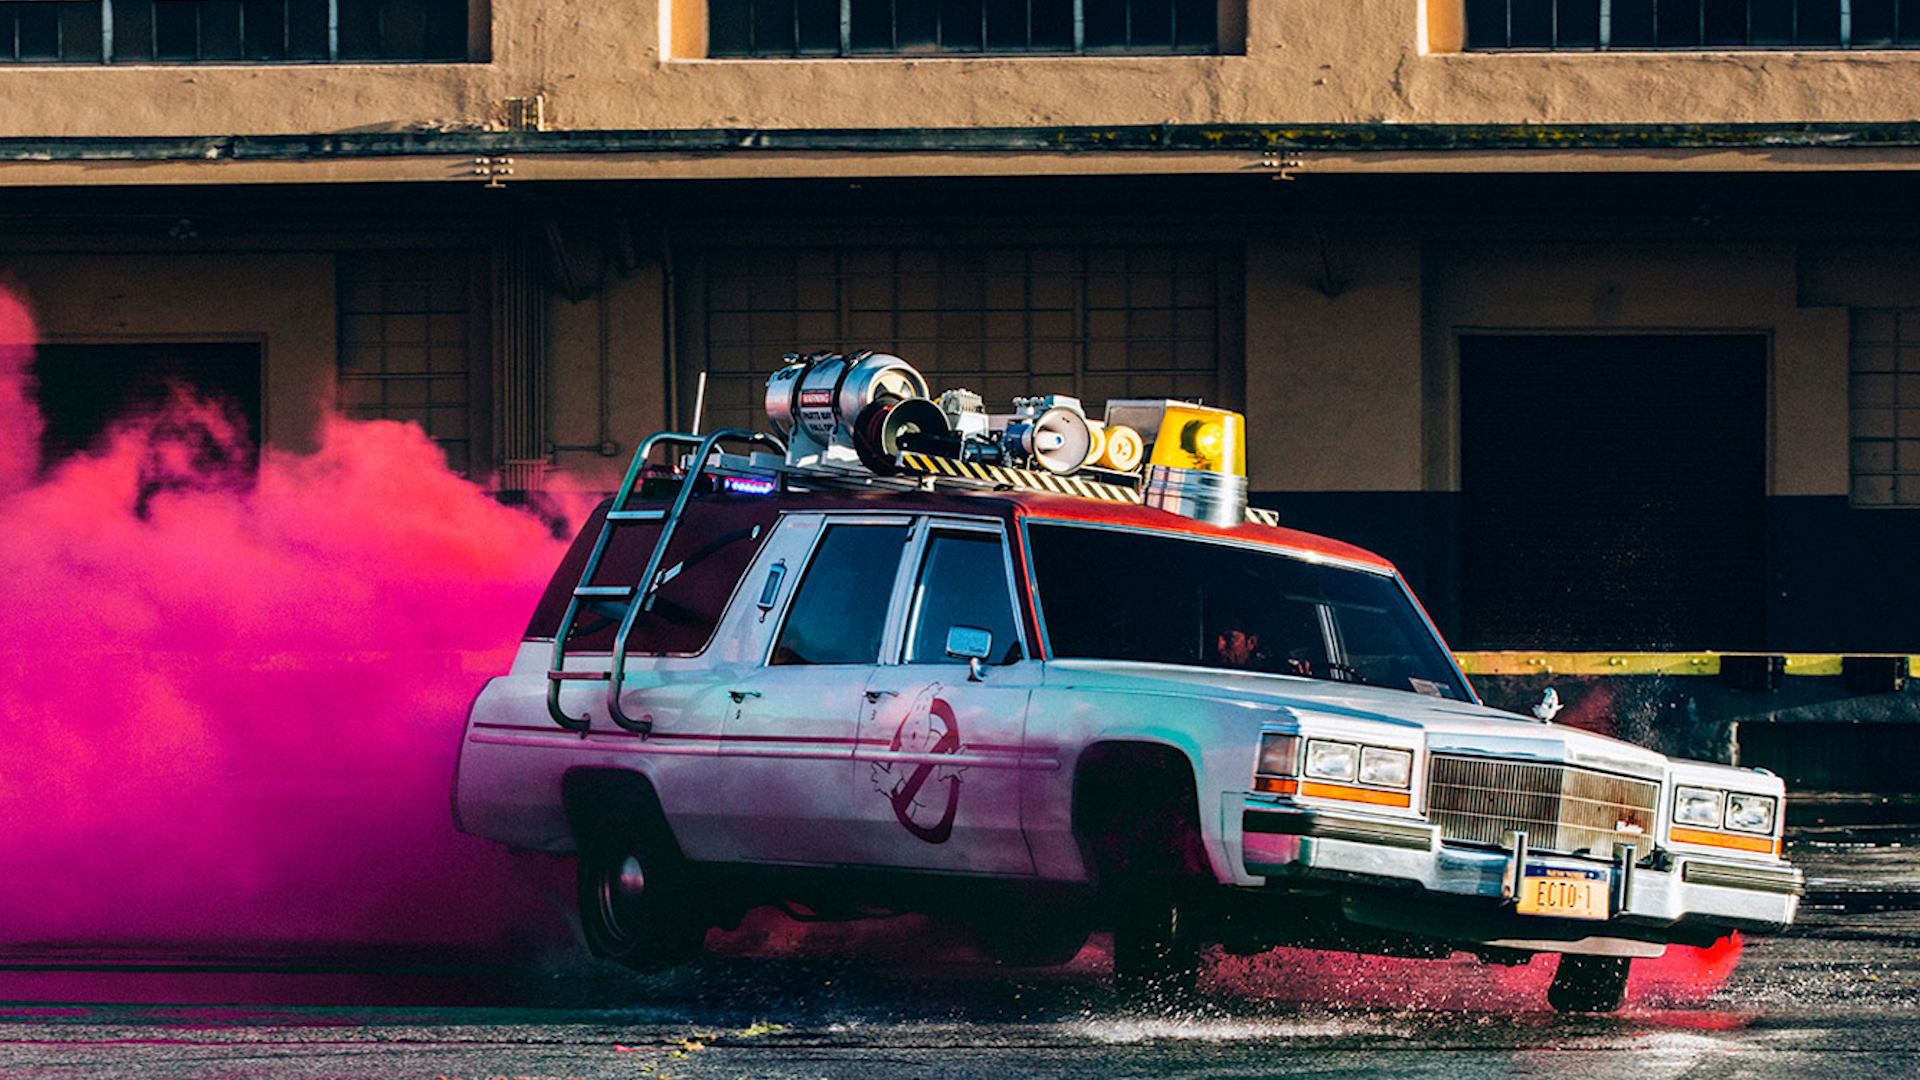 crave-extra-ghostbusters-and-lyft20